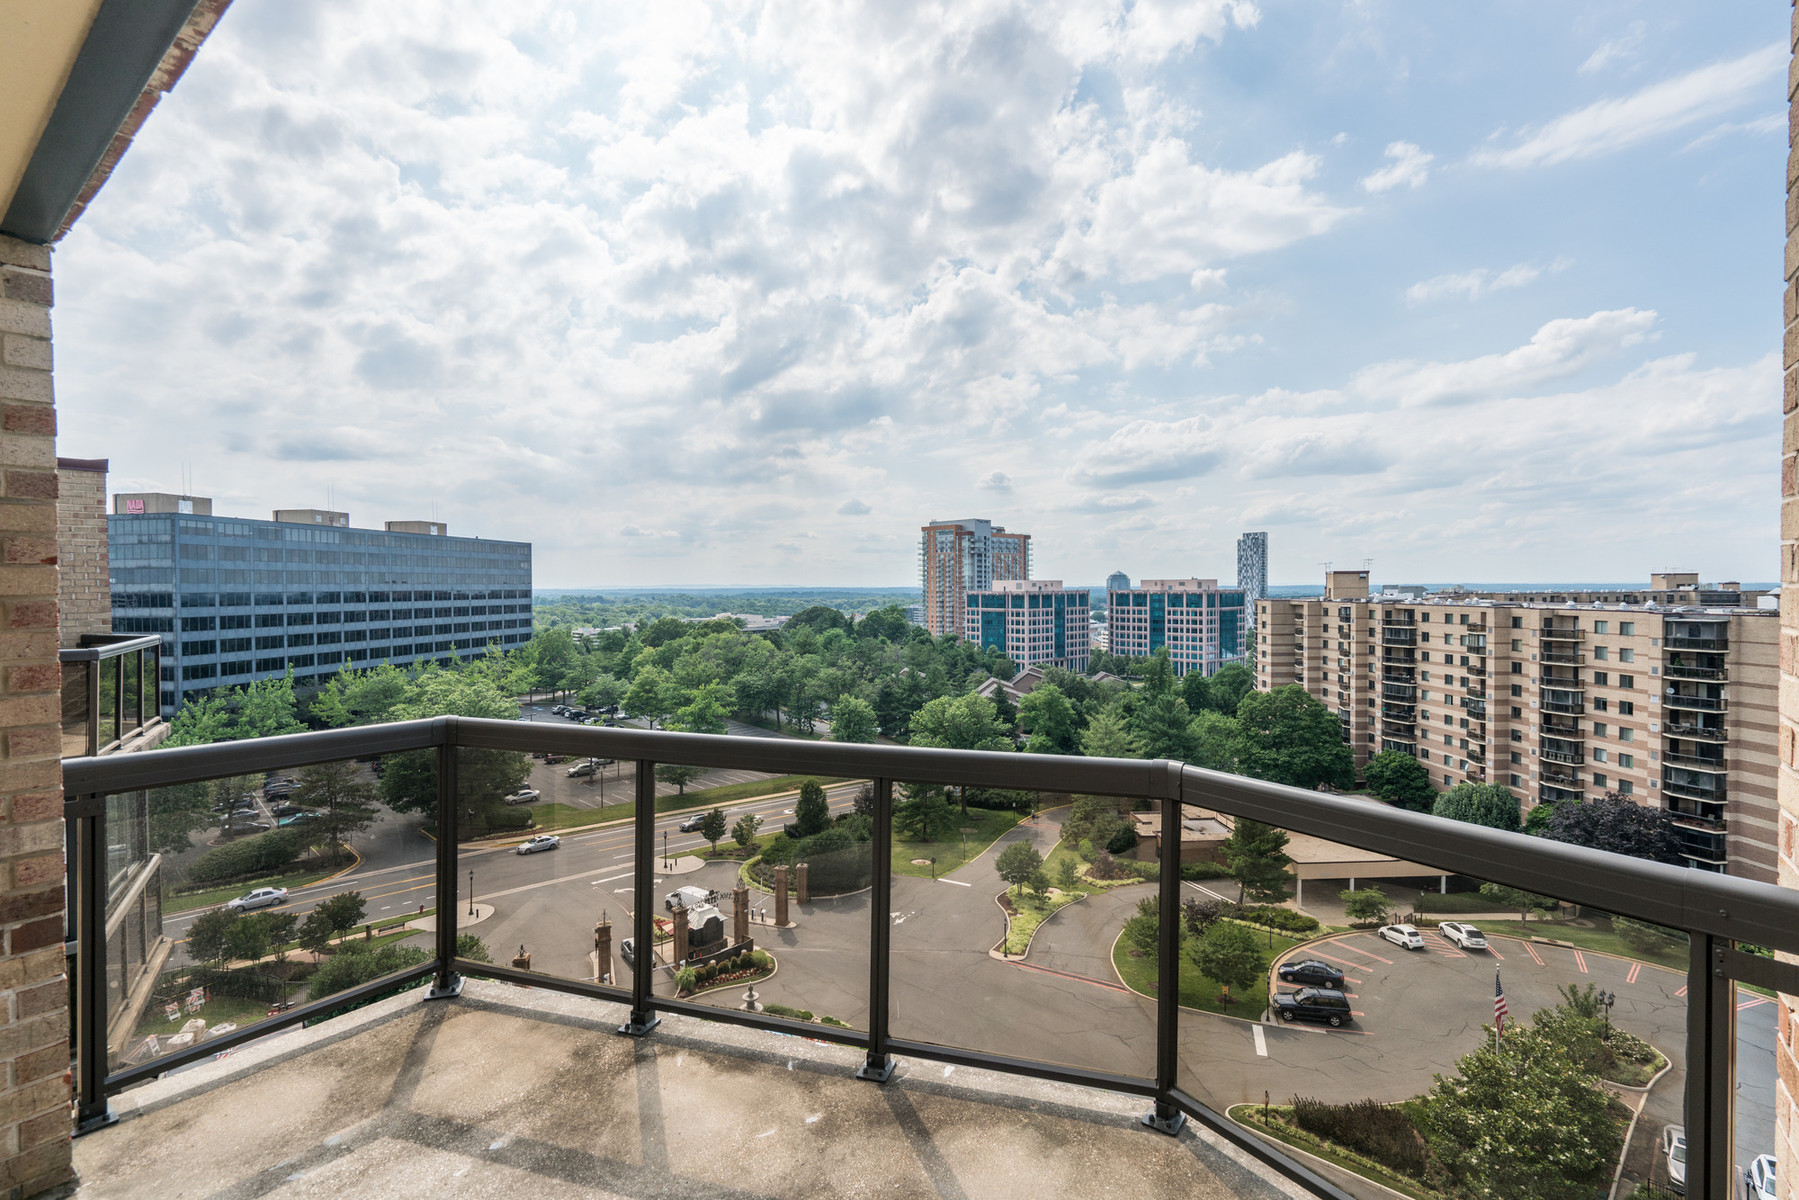 Additional photo for property listing at The Rotonda 8340 Greensboro Dr 1021 McLean, 弗吉尼亞州 22102 美國